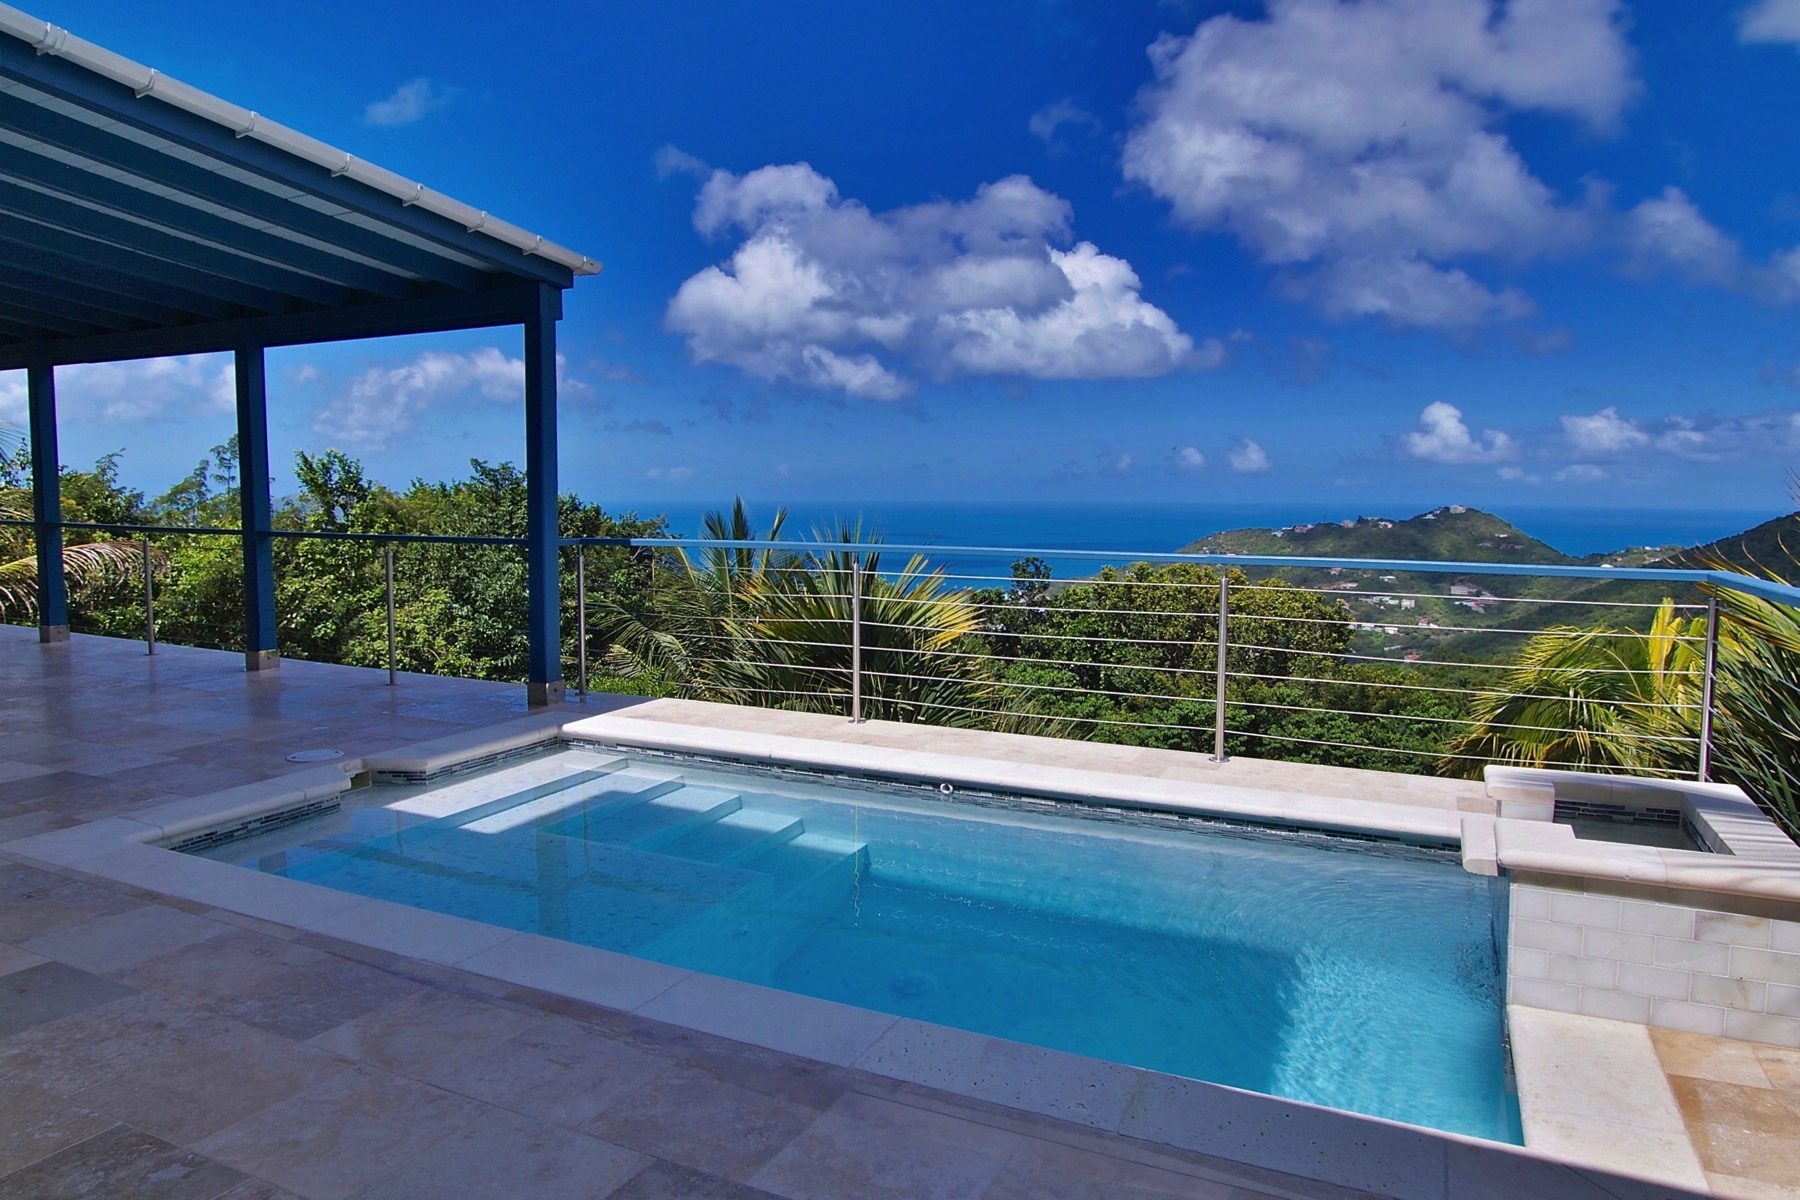 House for Sale at Shannon Heights Shannon, Tortola British Virgin Islands